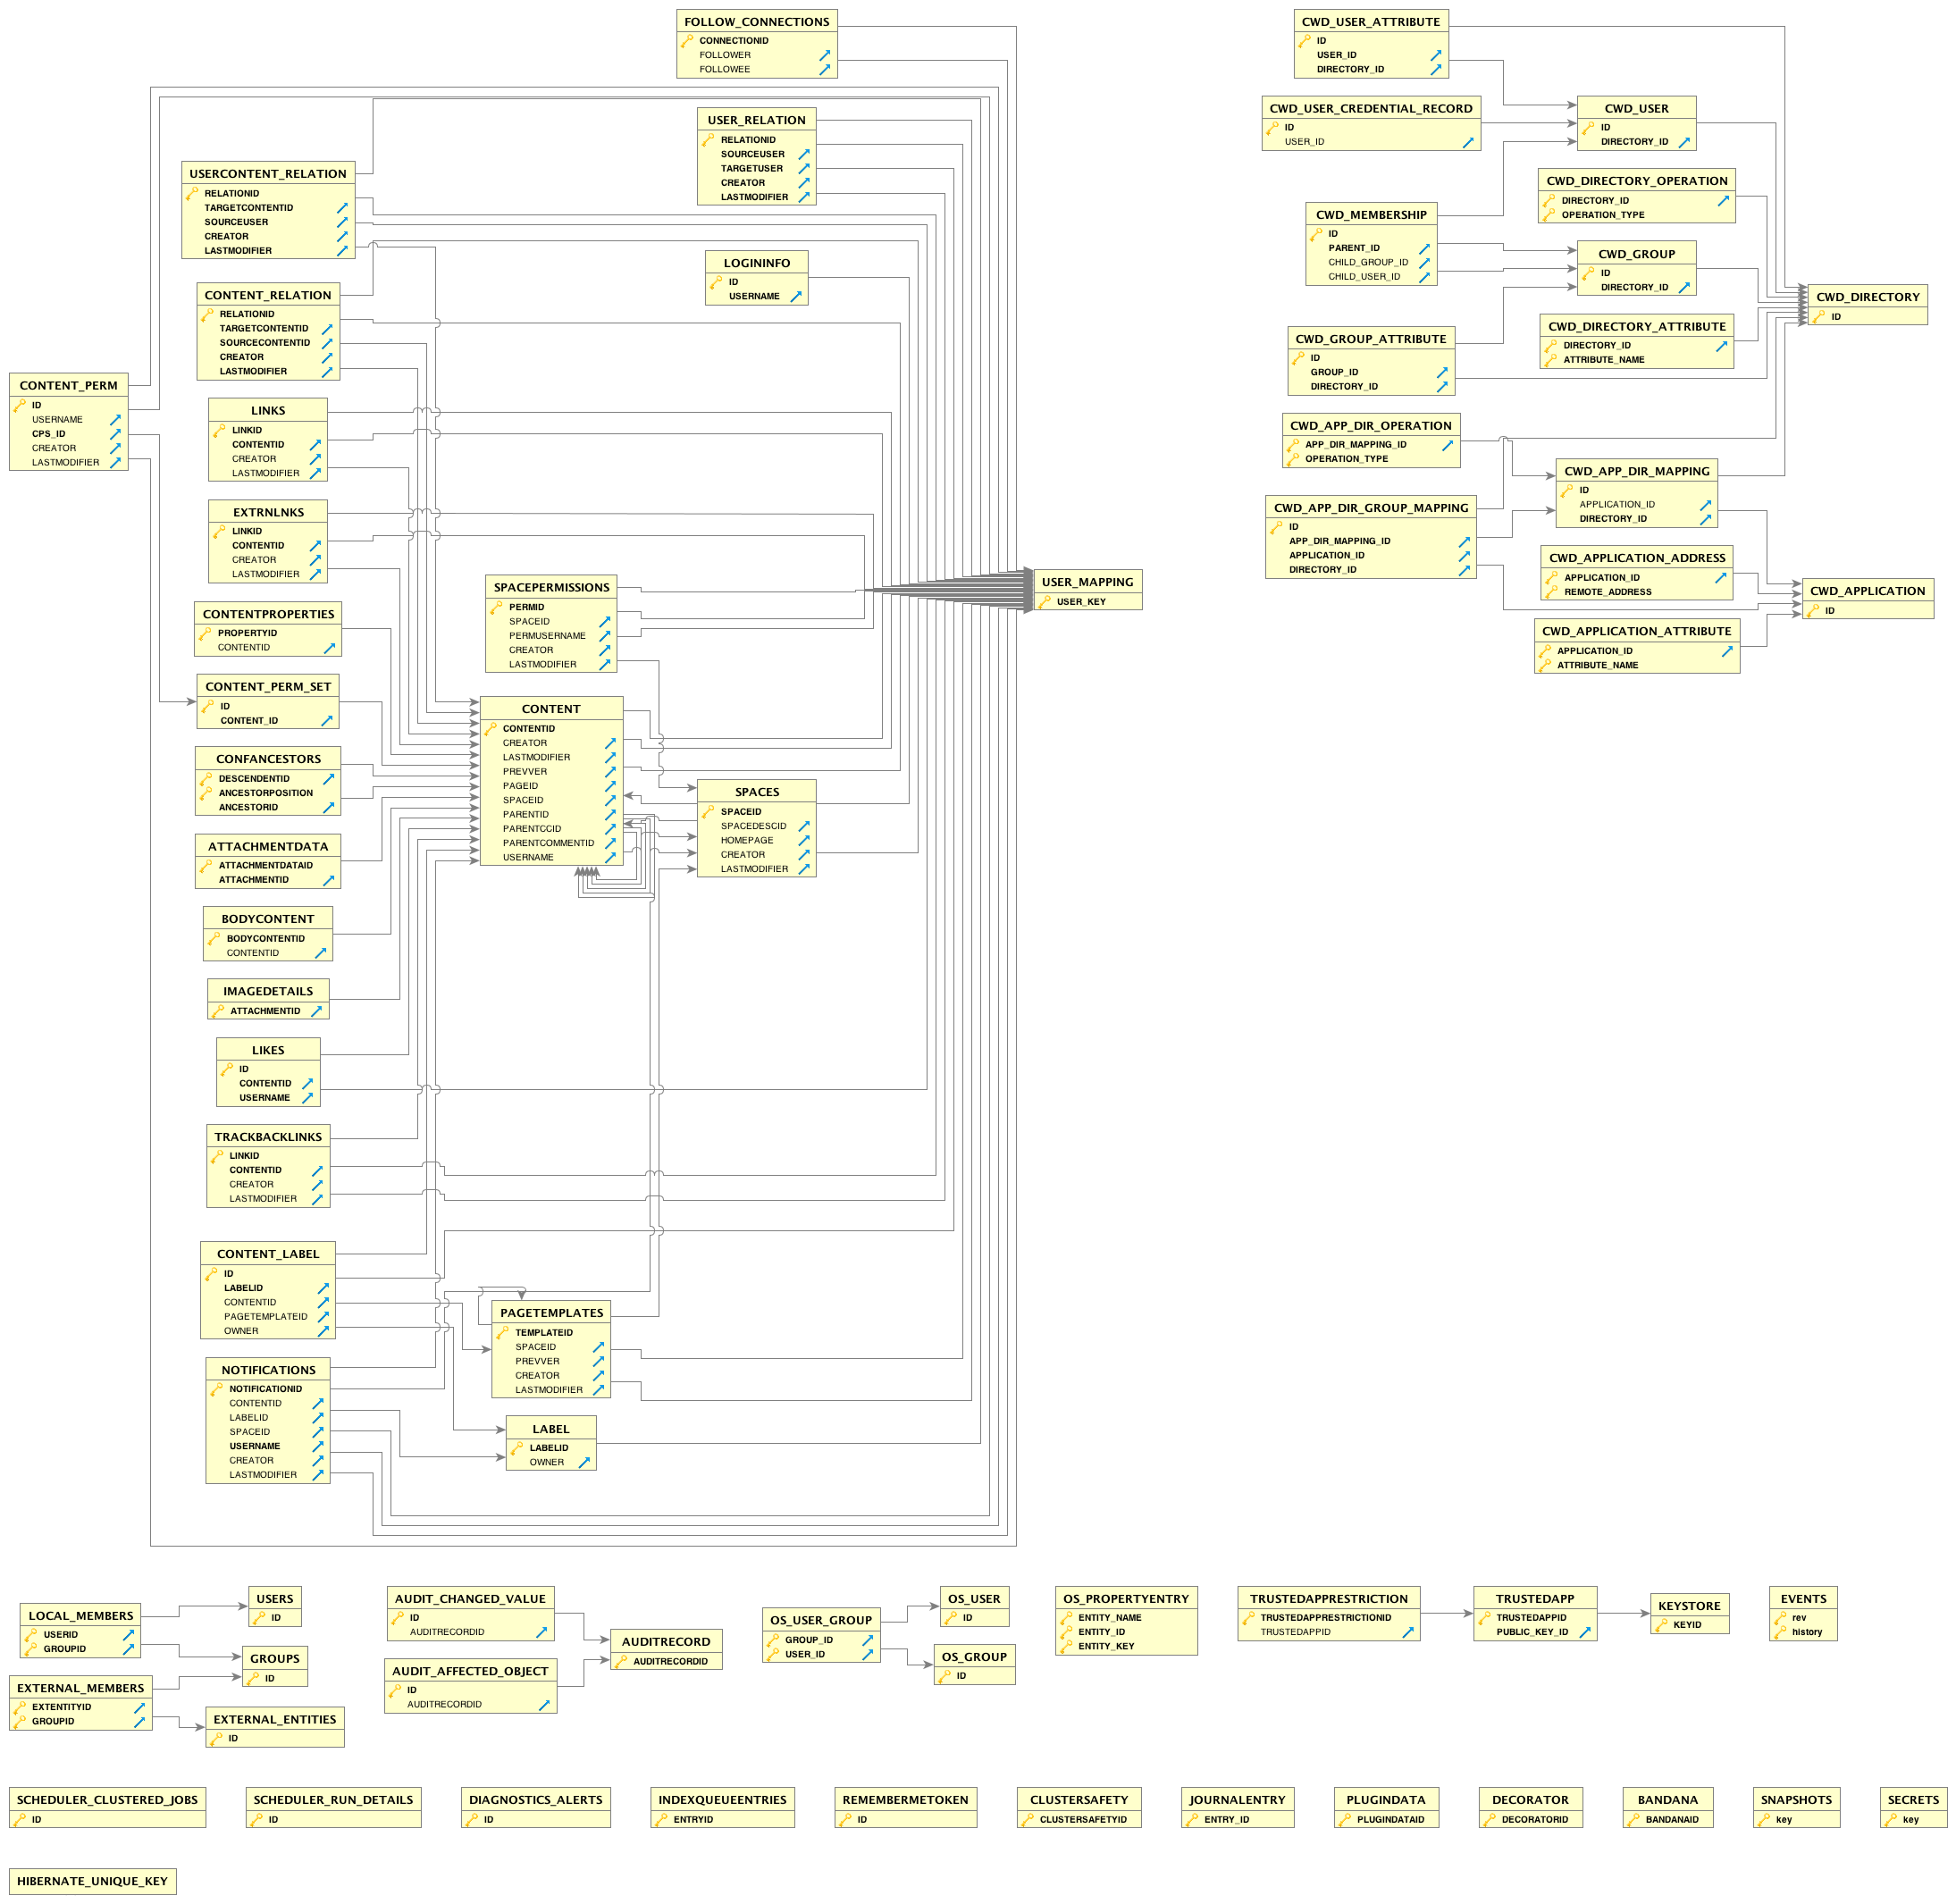 Confluence Data Model Atlassian Documentation Center Work Diagram On Wiring For Generator To House View Our Visualization Excludes Some Tables Including Activeobjects